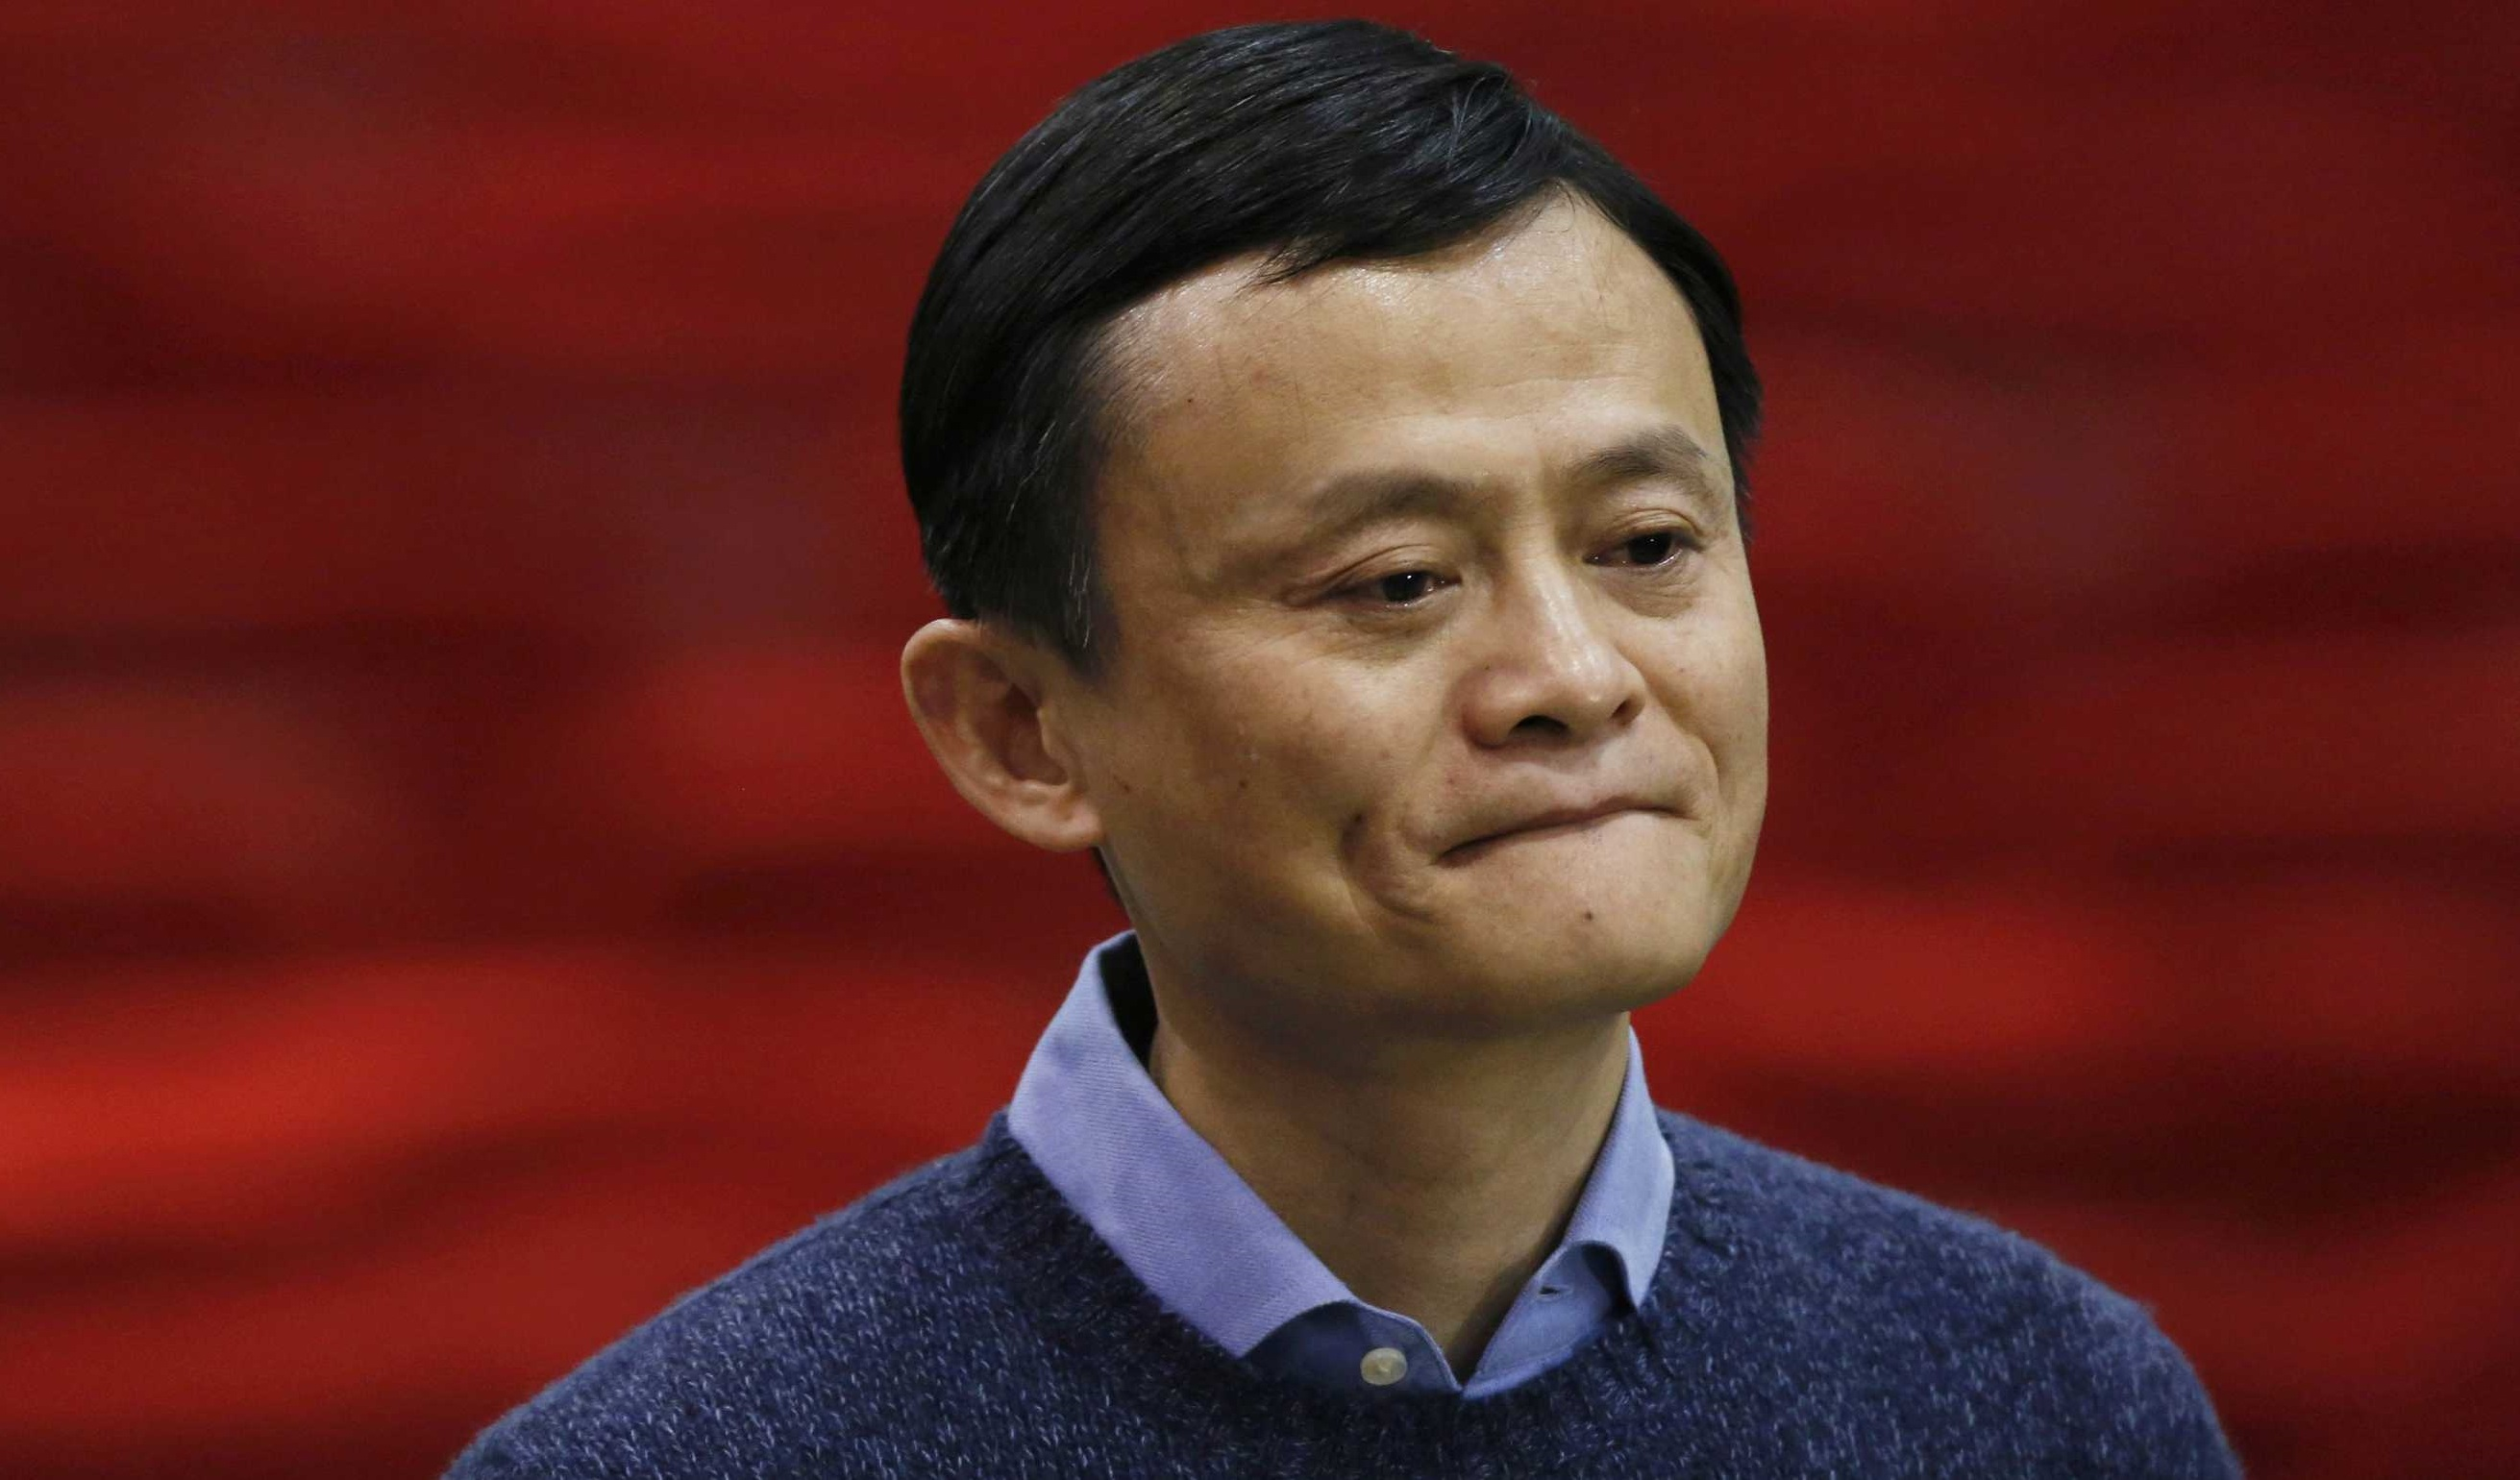 jack-ma-chinas-richest-man-was-happier-earning-12-a-month-than-he-is-as-a-billionaire